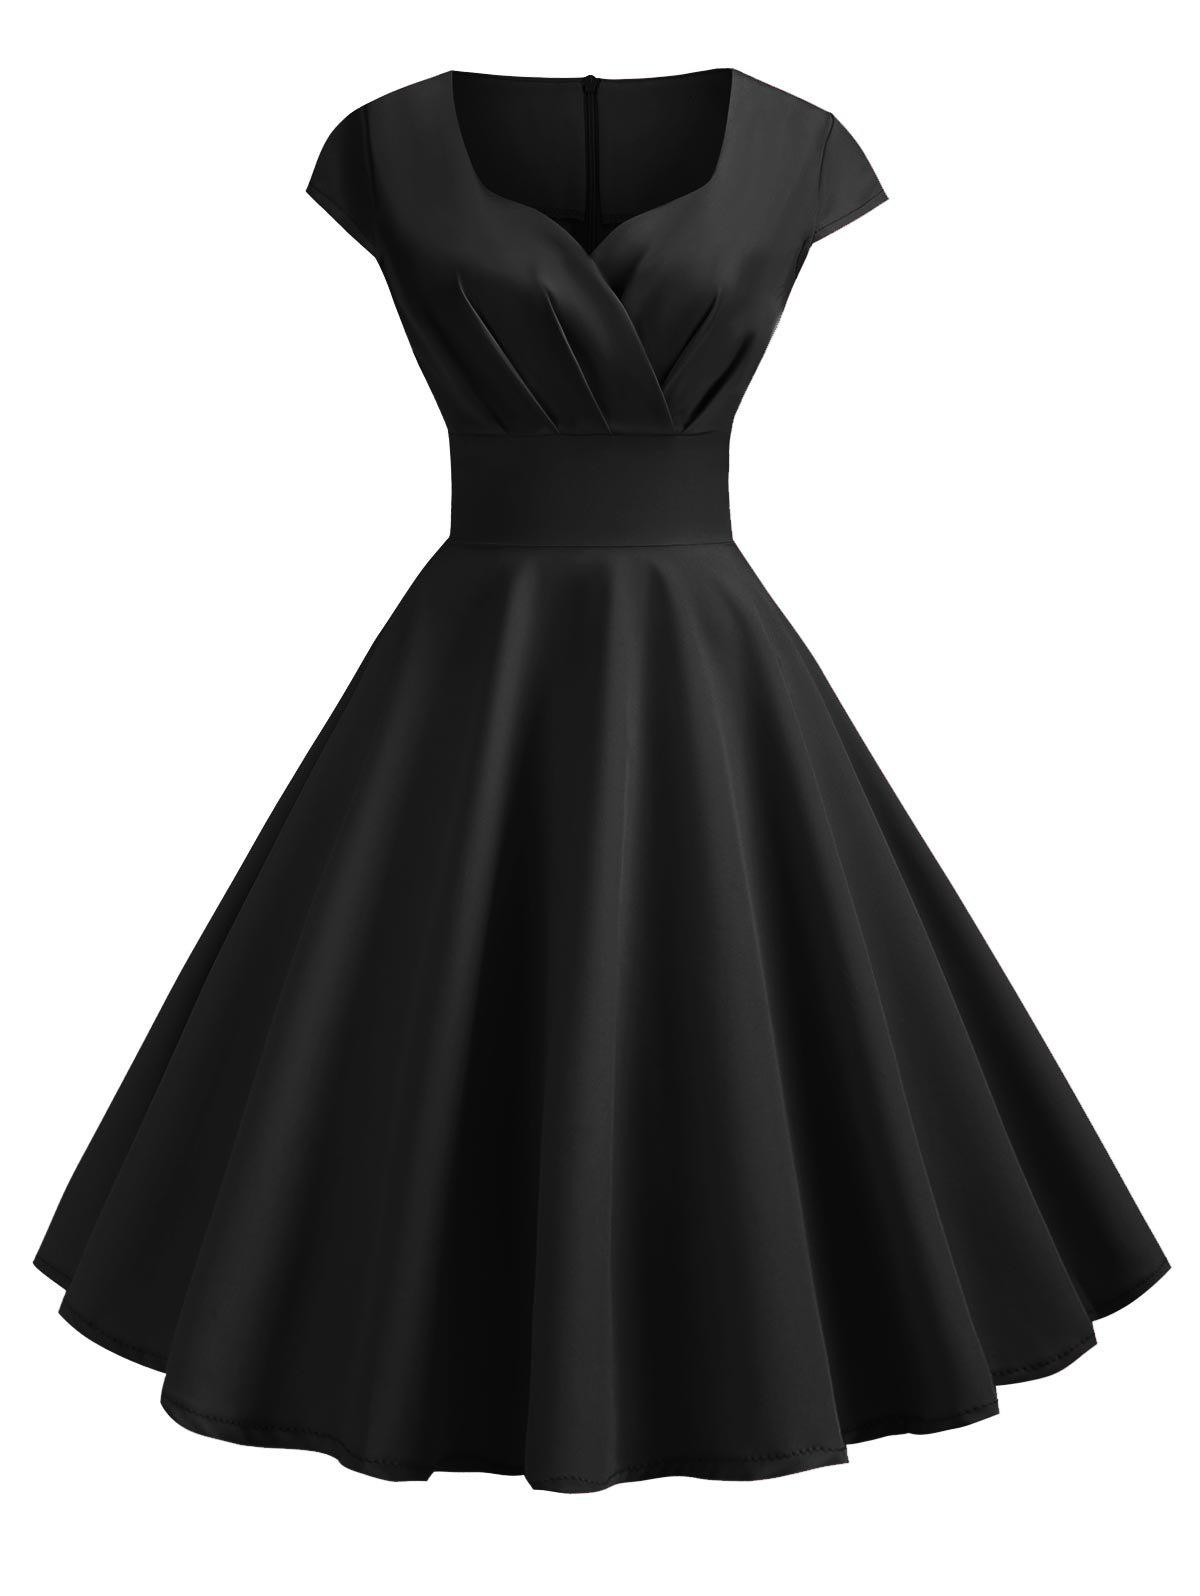 Sweetheart Neck Vintage Rockabilly Style Fit and Flare Dress - BLACK XL